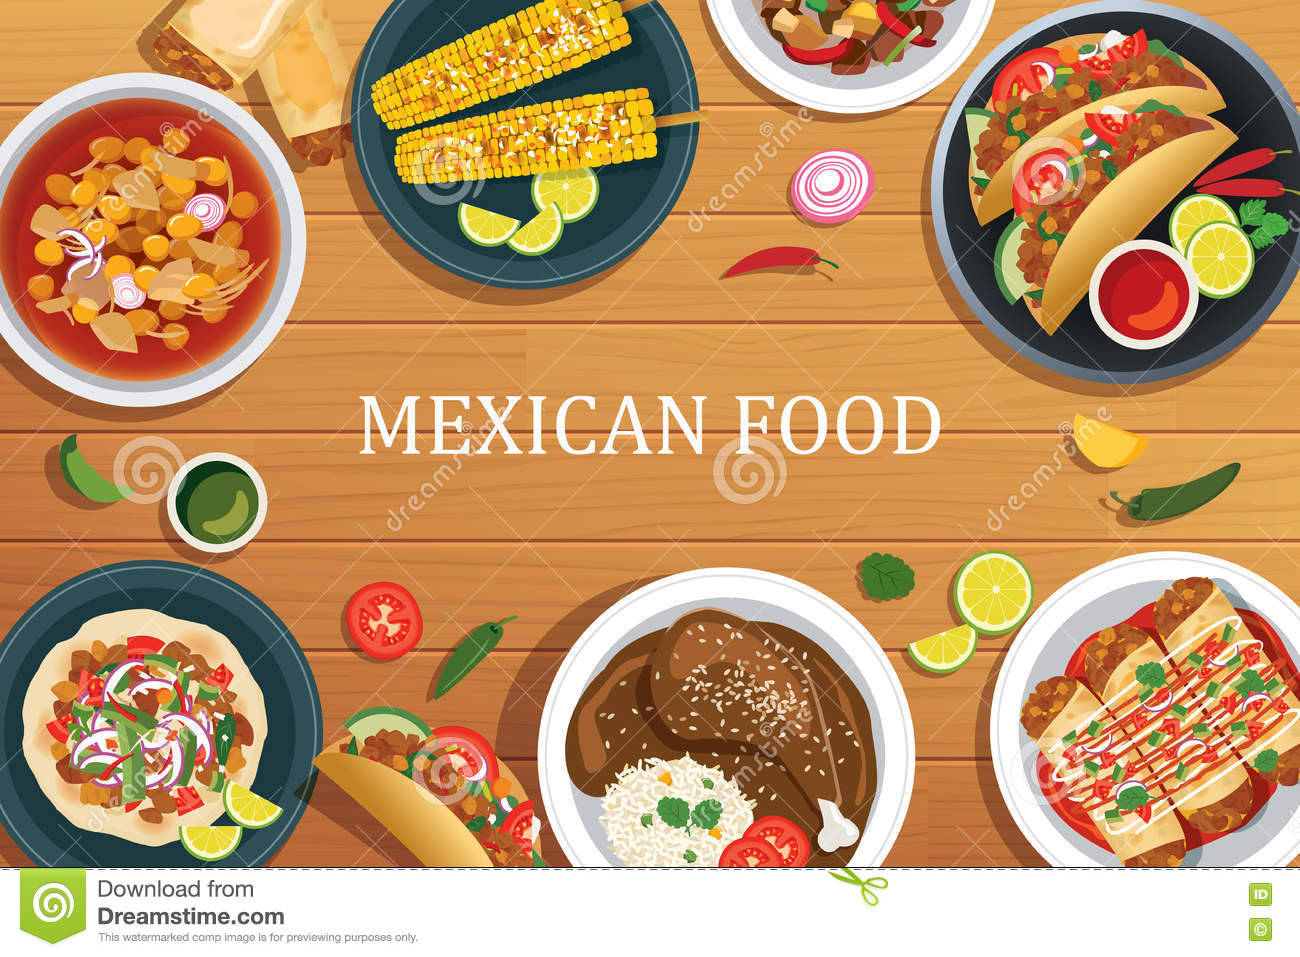 Healthy Food At Mexican Restaurant